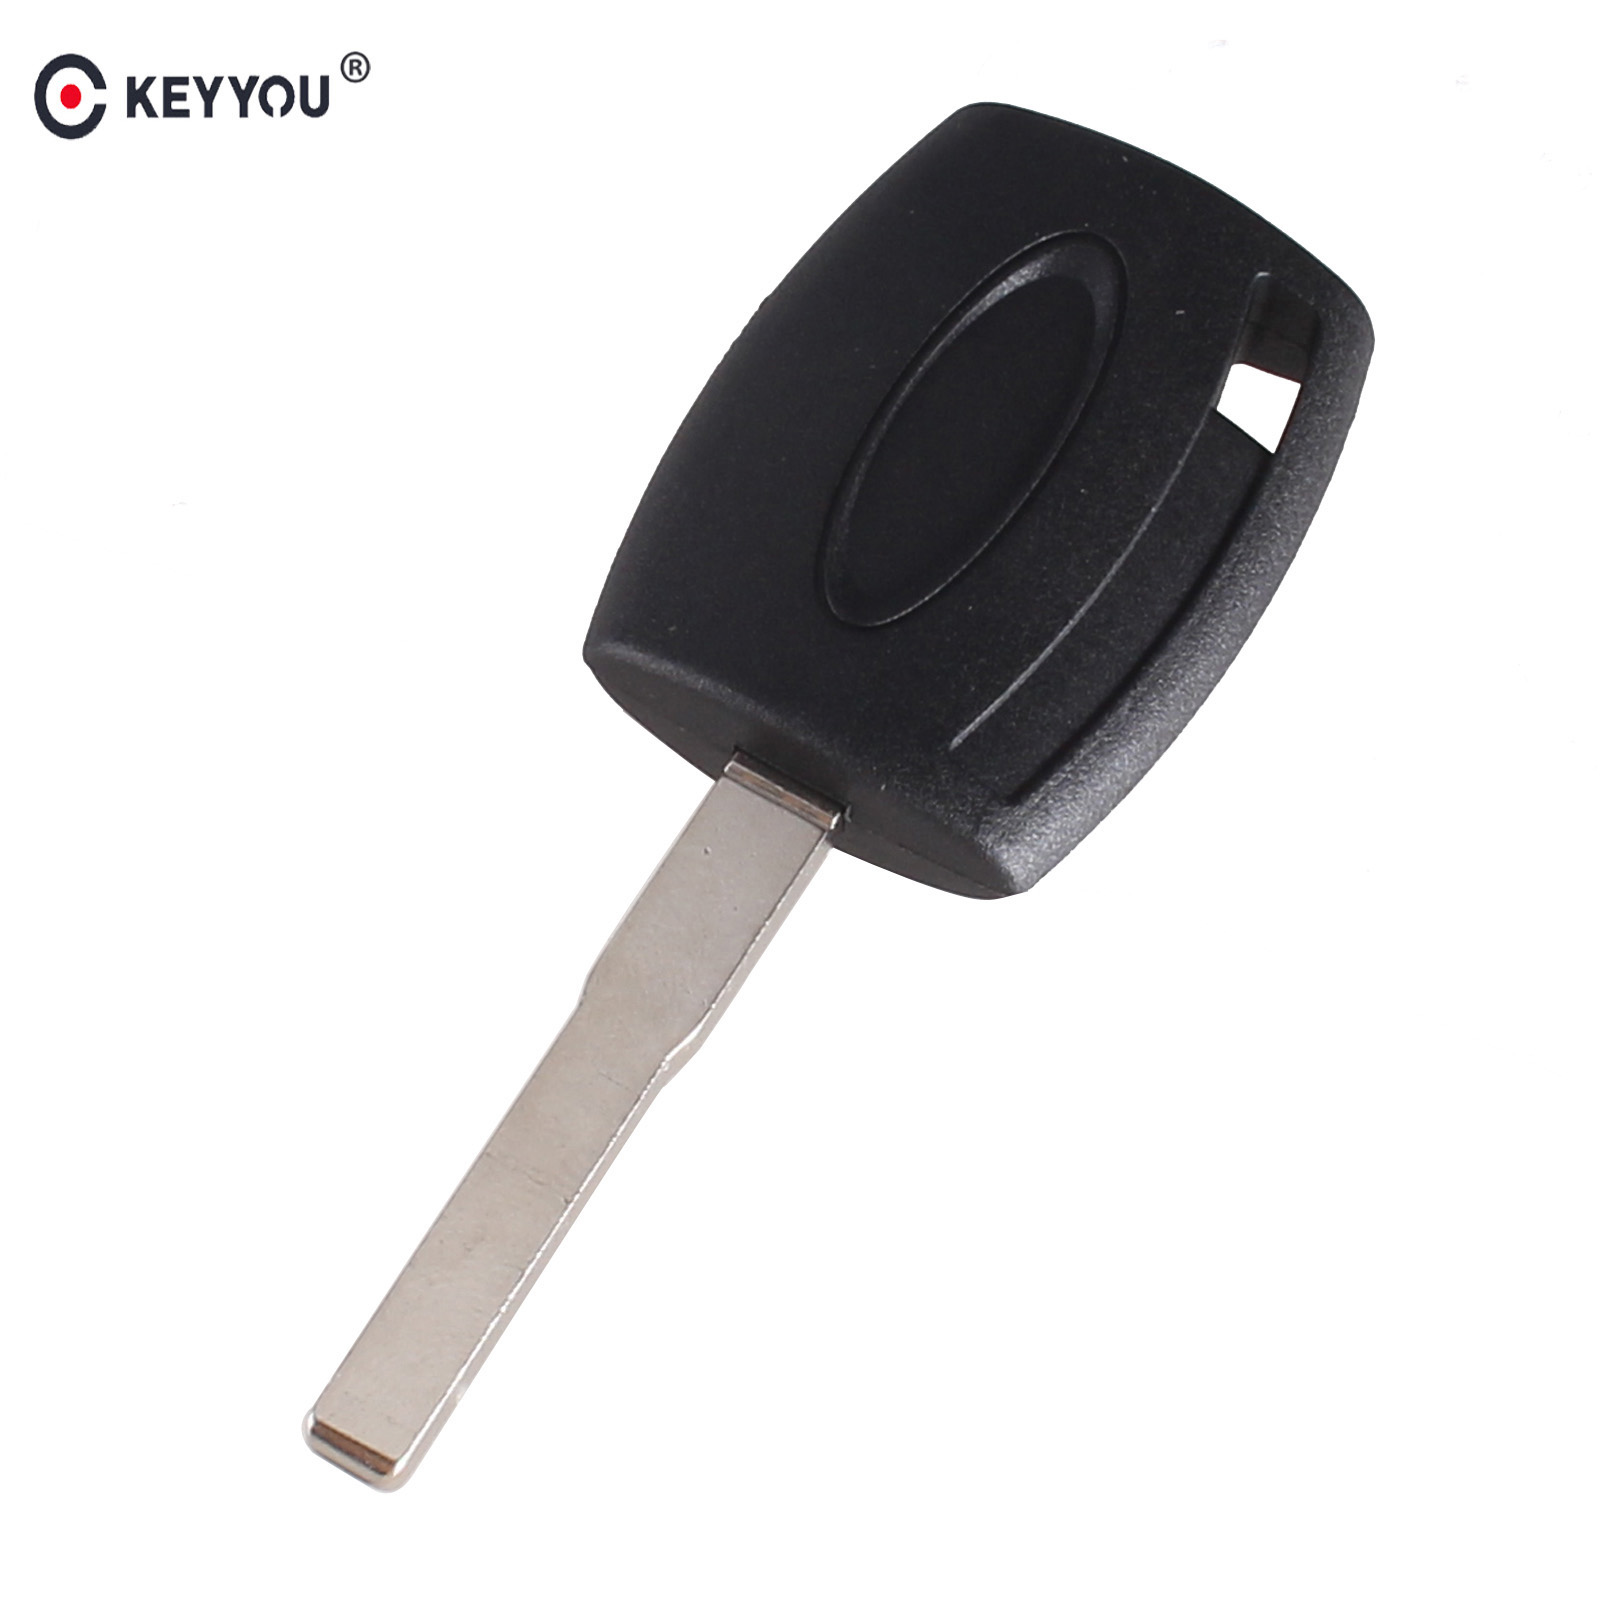 keyyou-transponder-key-case-shell-for-ford-fiesta-mondeo-focus-c-max-s-max-galaxy-kuga-hu101-free-shipping